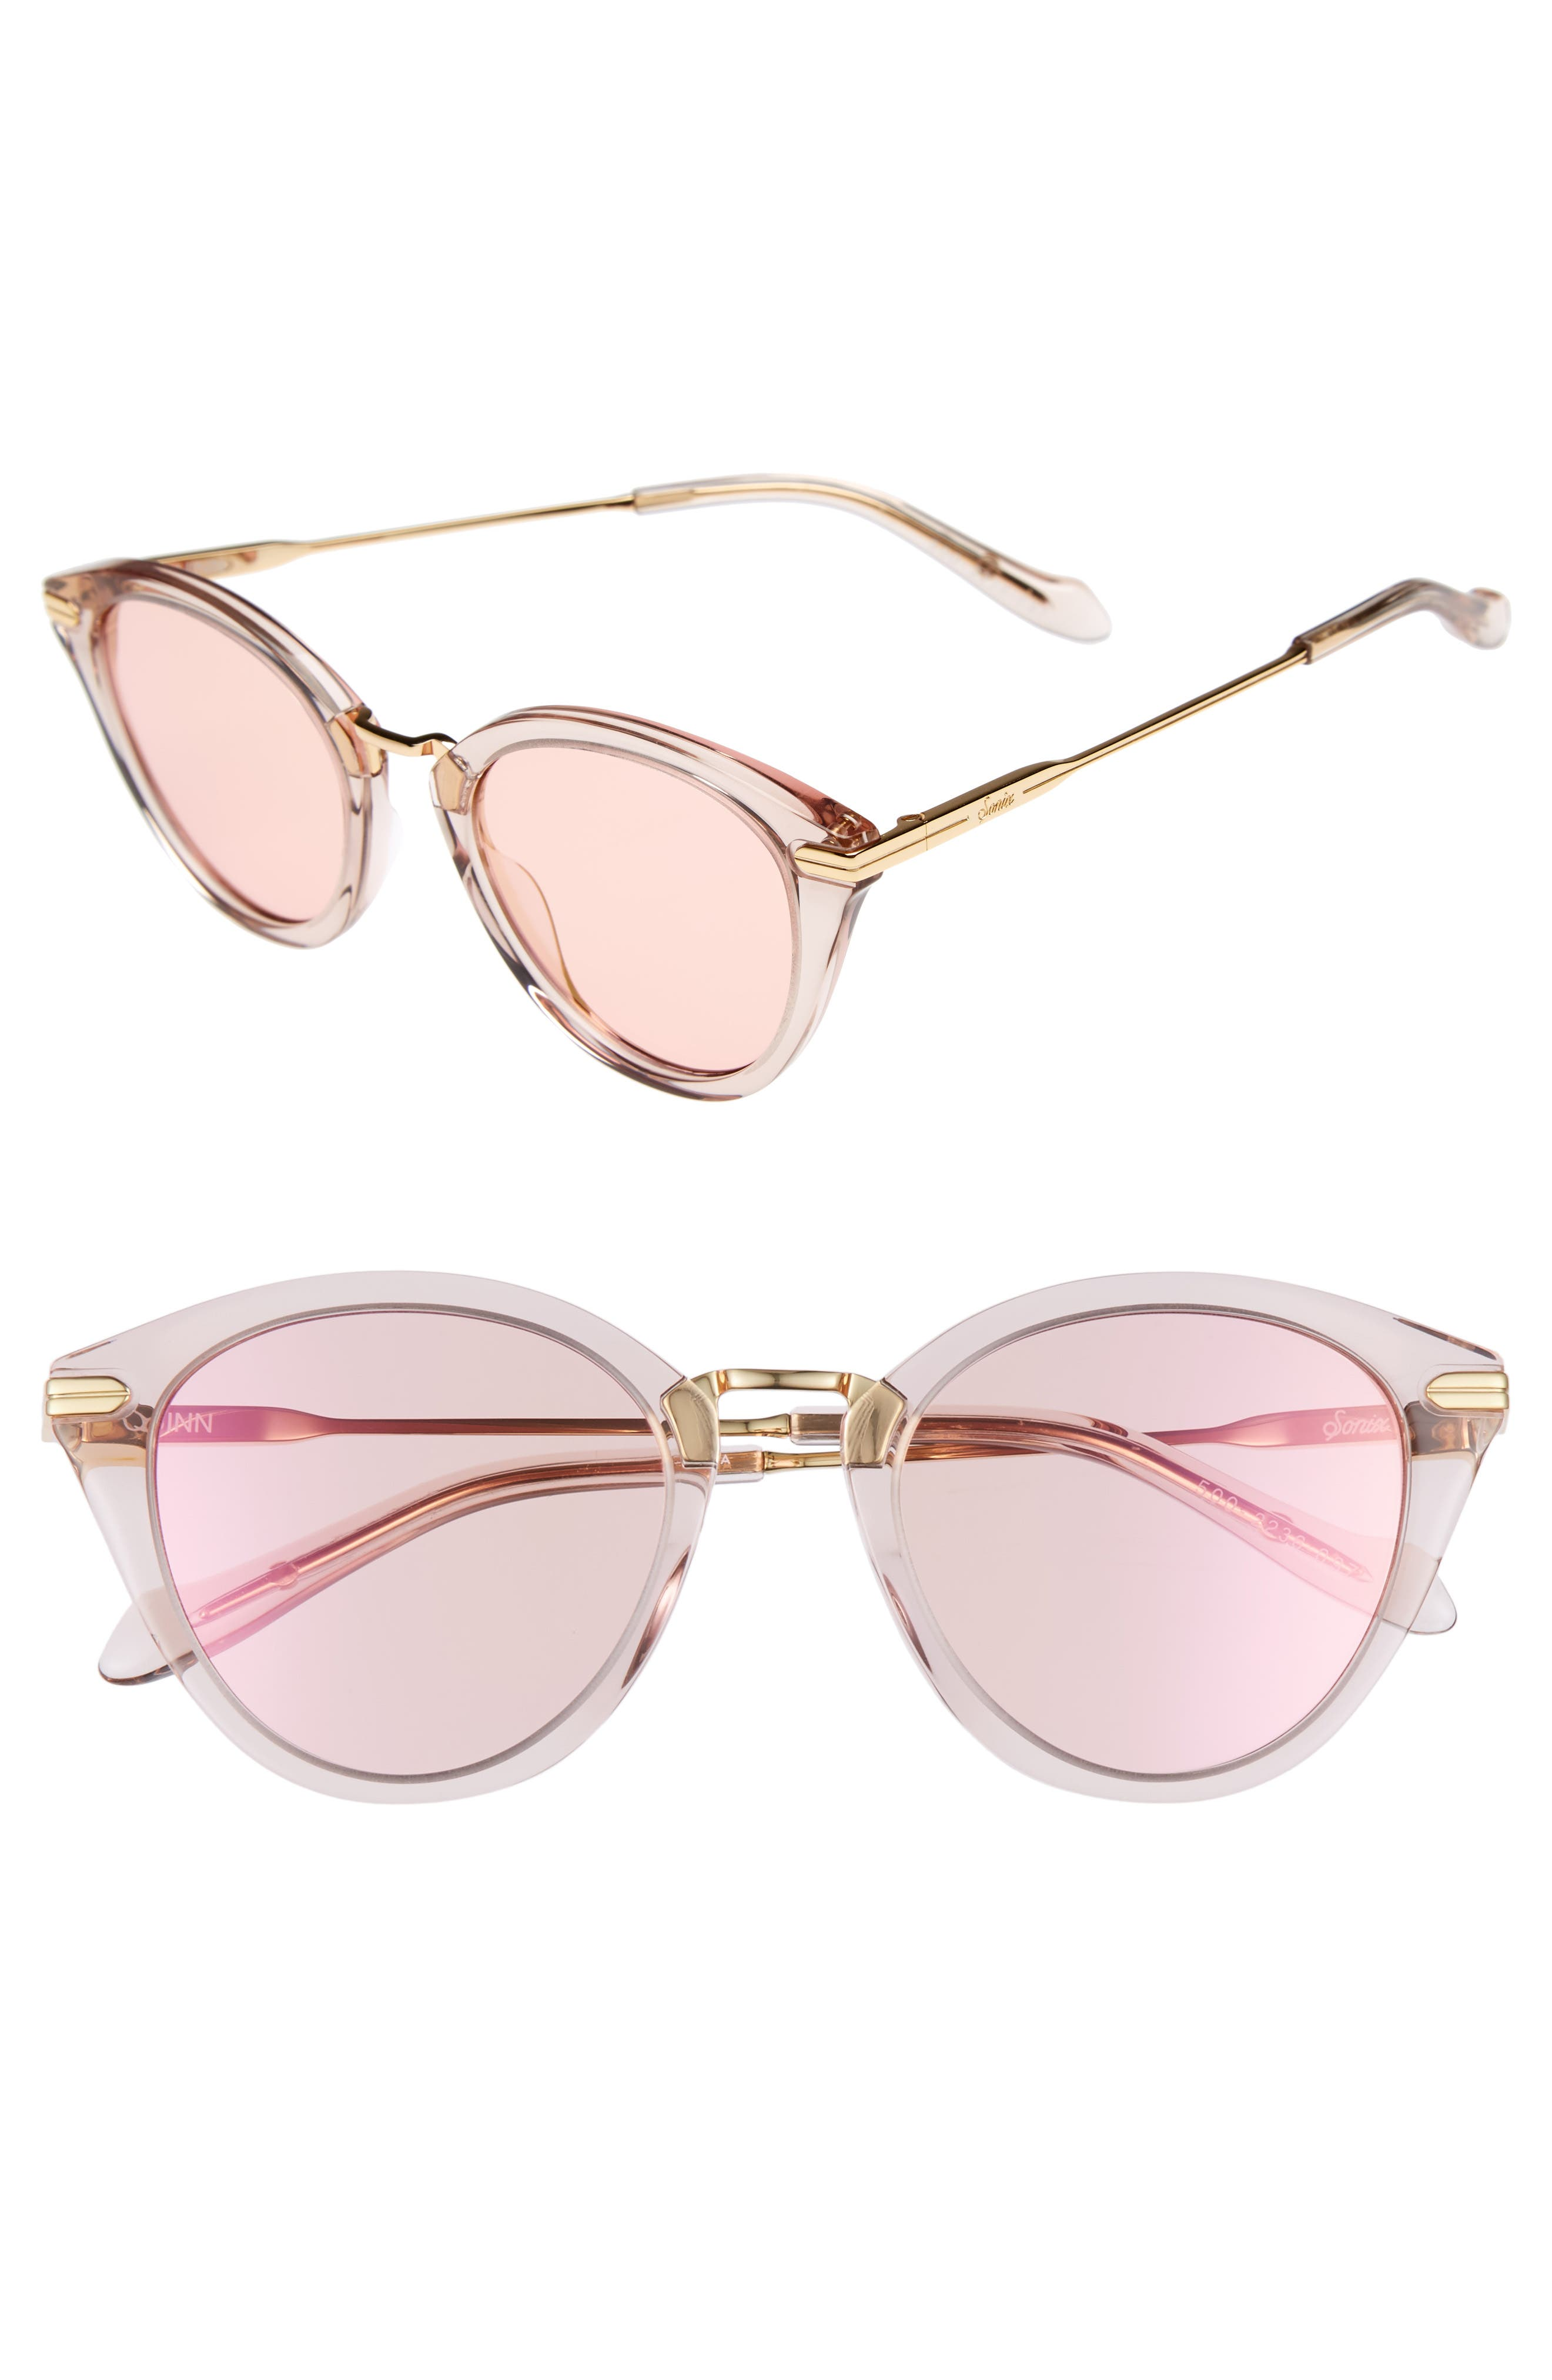 Quinn 48mm Cat Eye Sunglasses,                         Main,                         color, Mauve Clear/ Pink Mirror